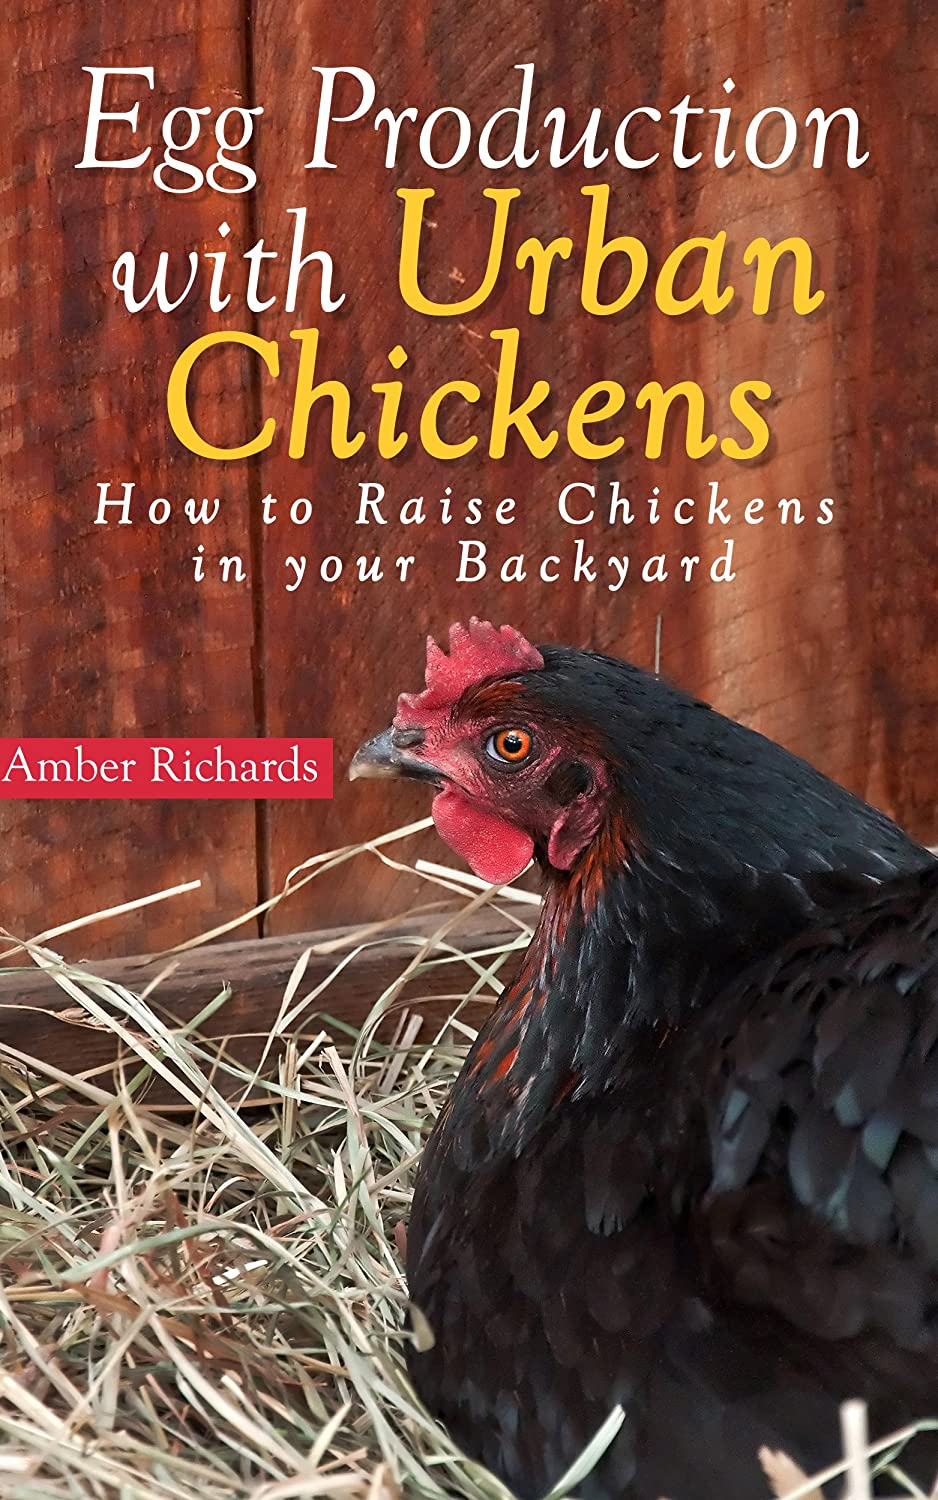 http://www.amazon.com/Egg-Production-Urban-Chickens-Backyard-ebook/dp/B00FIEW14Q/ref=as_sl_pc_ss_til?tag=lettfromahome-20&linkCode=w01&linkId=VBAUGPENTHEZC2OI&creativeASIN=B00FIEW14Q